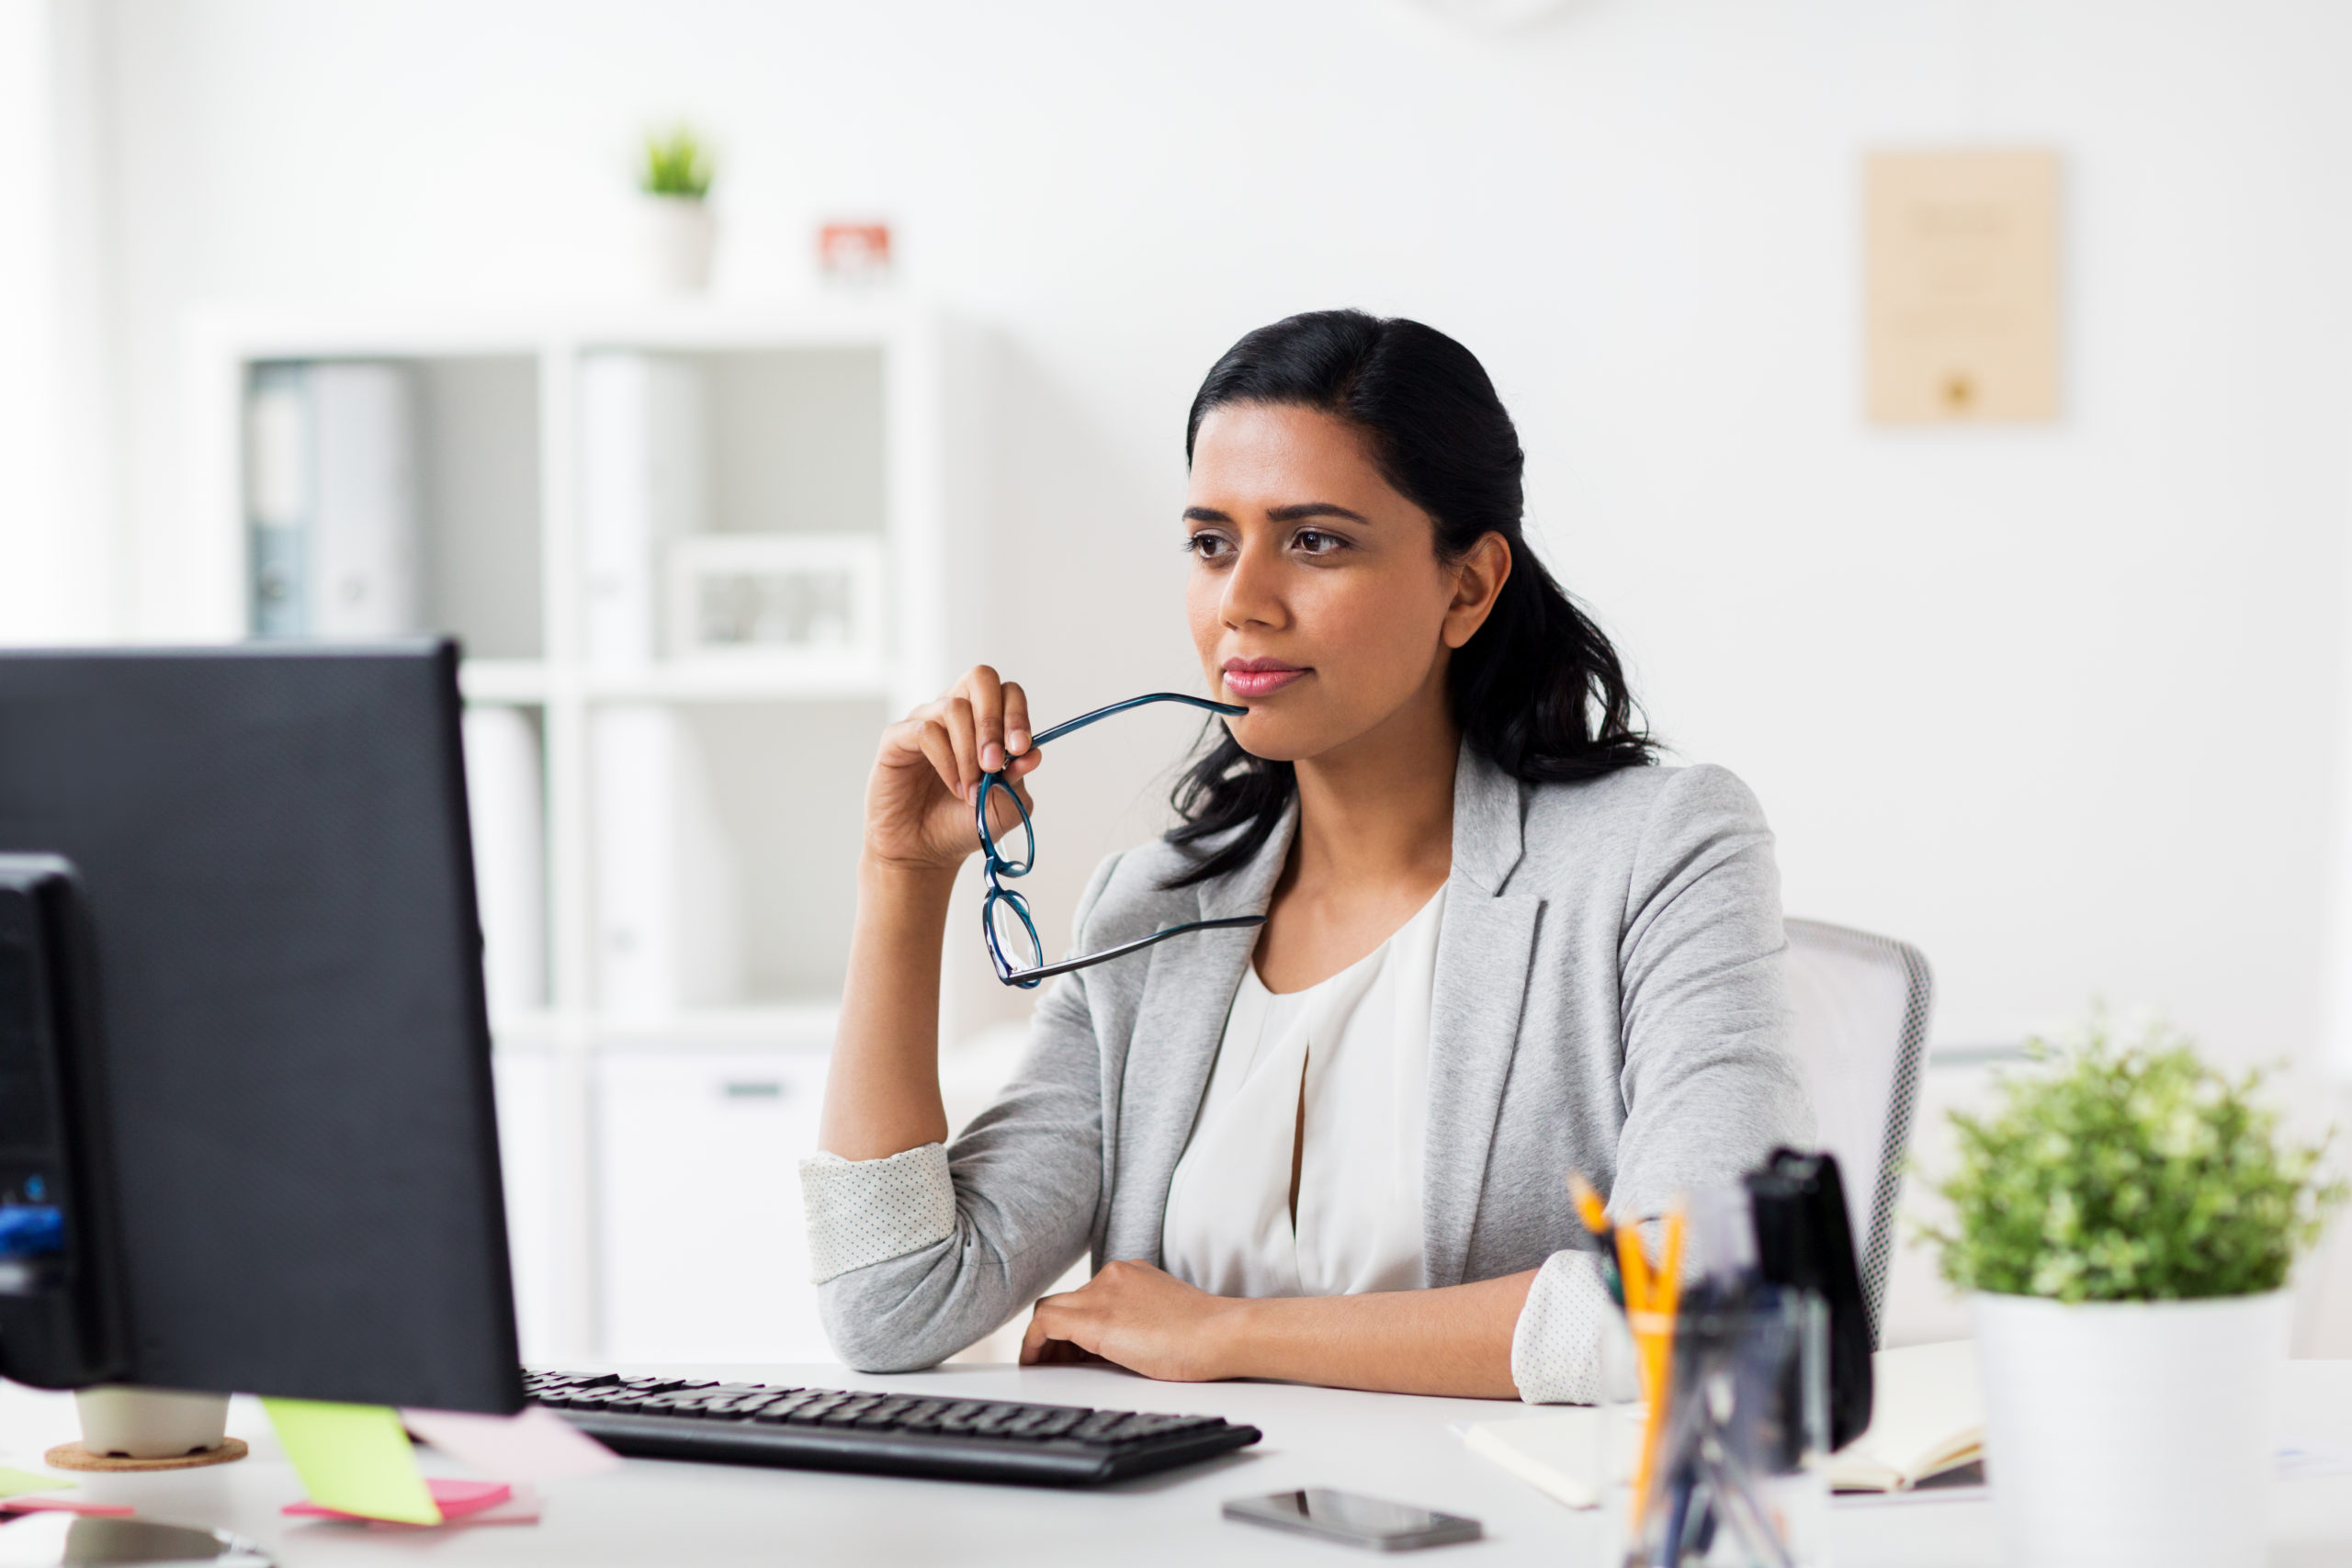 businesswoman with glasses and computer at office